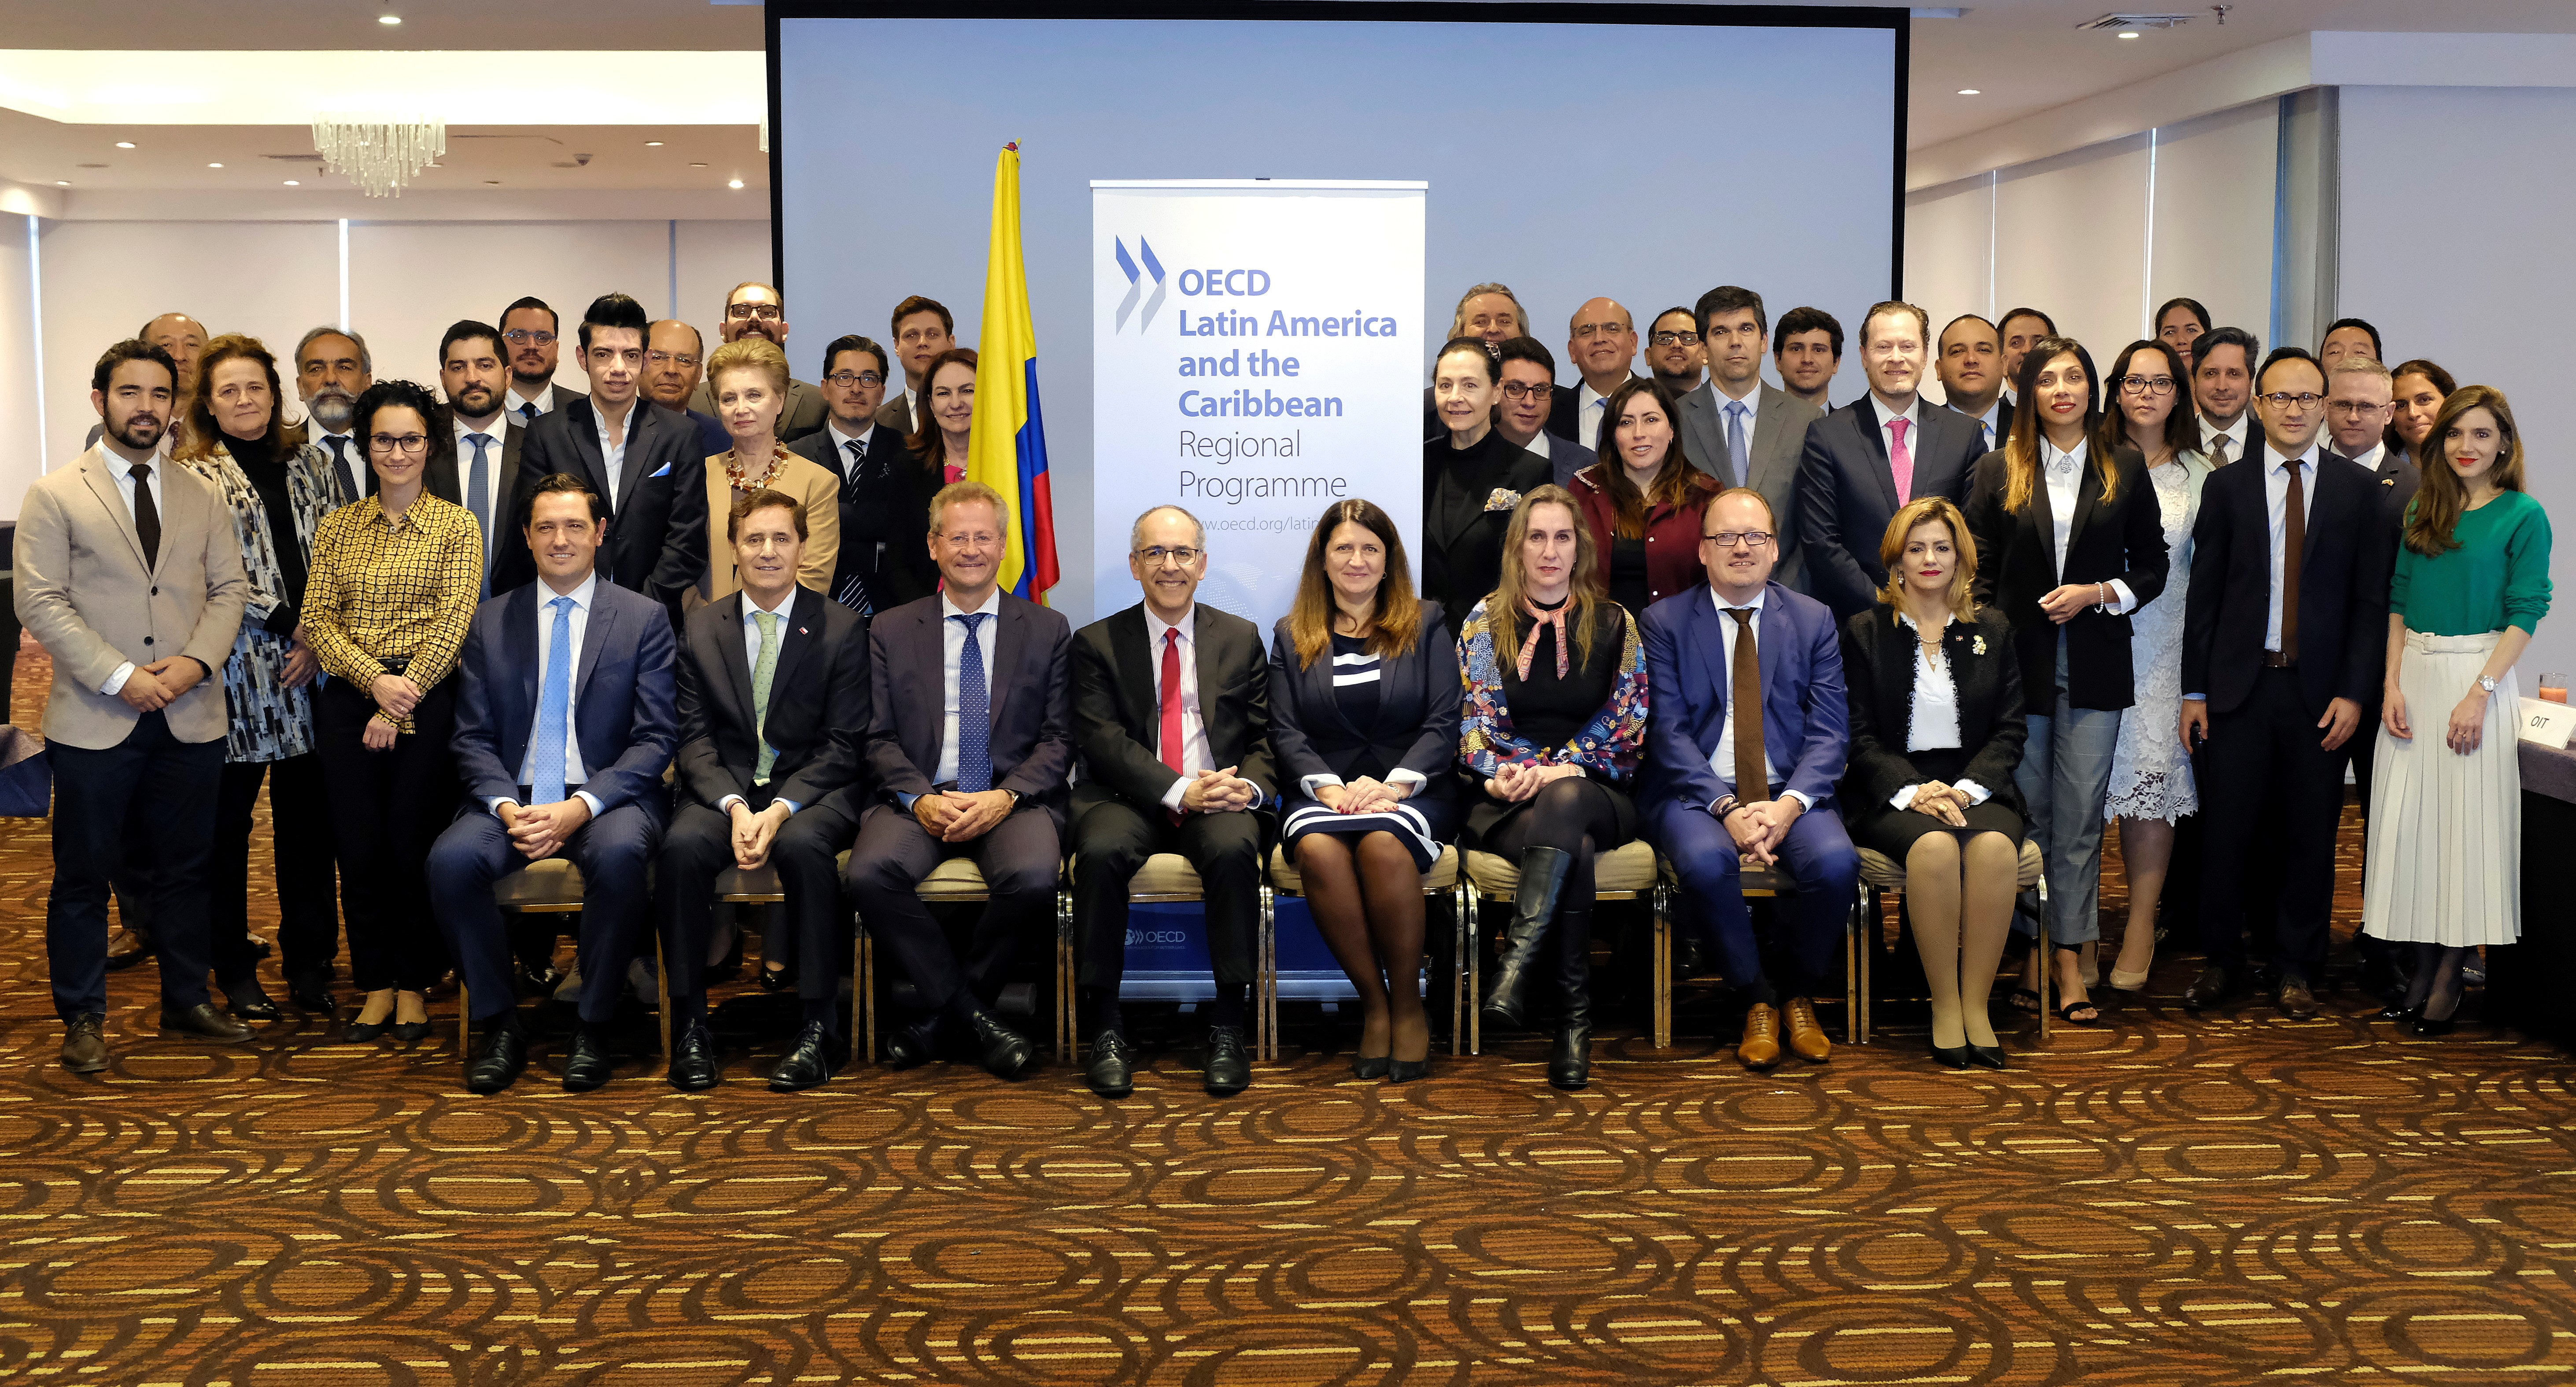 OECD LAC Regional Programme Family photo during the 9th Steering Group Meeting 2019, in Bogota Colombia